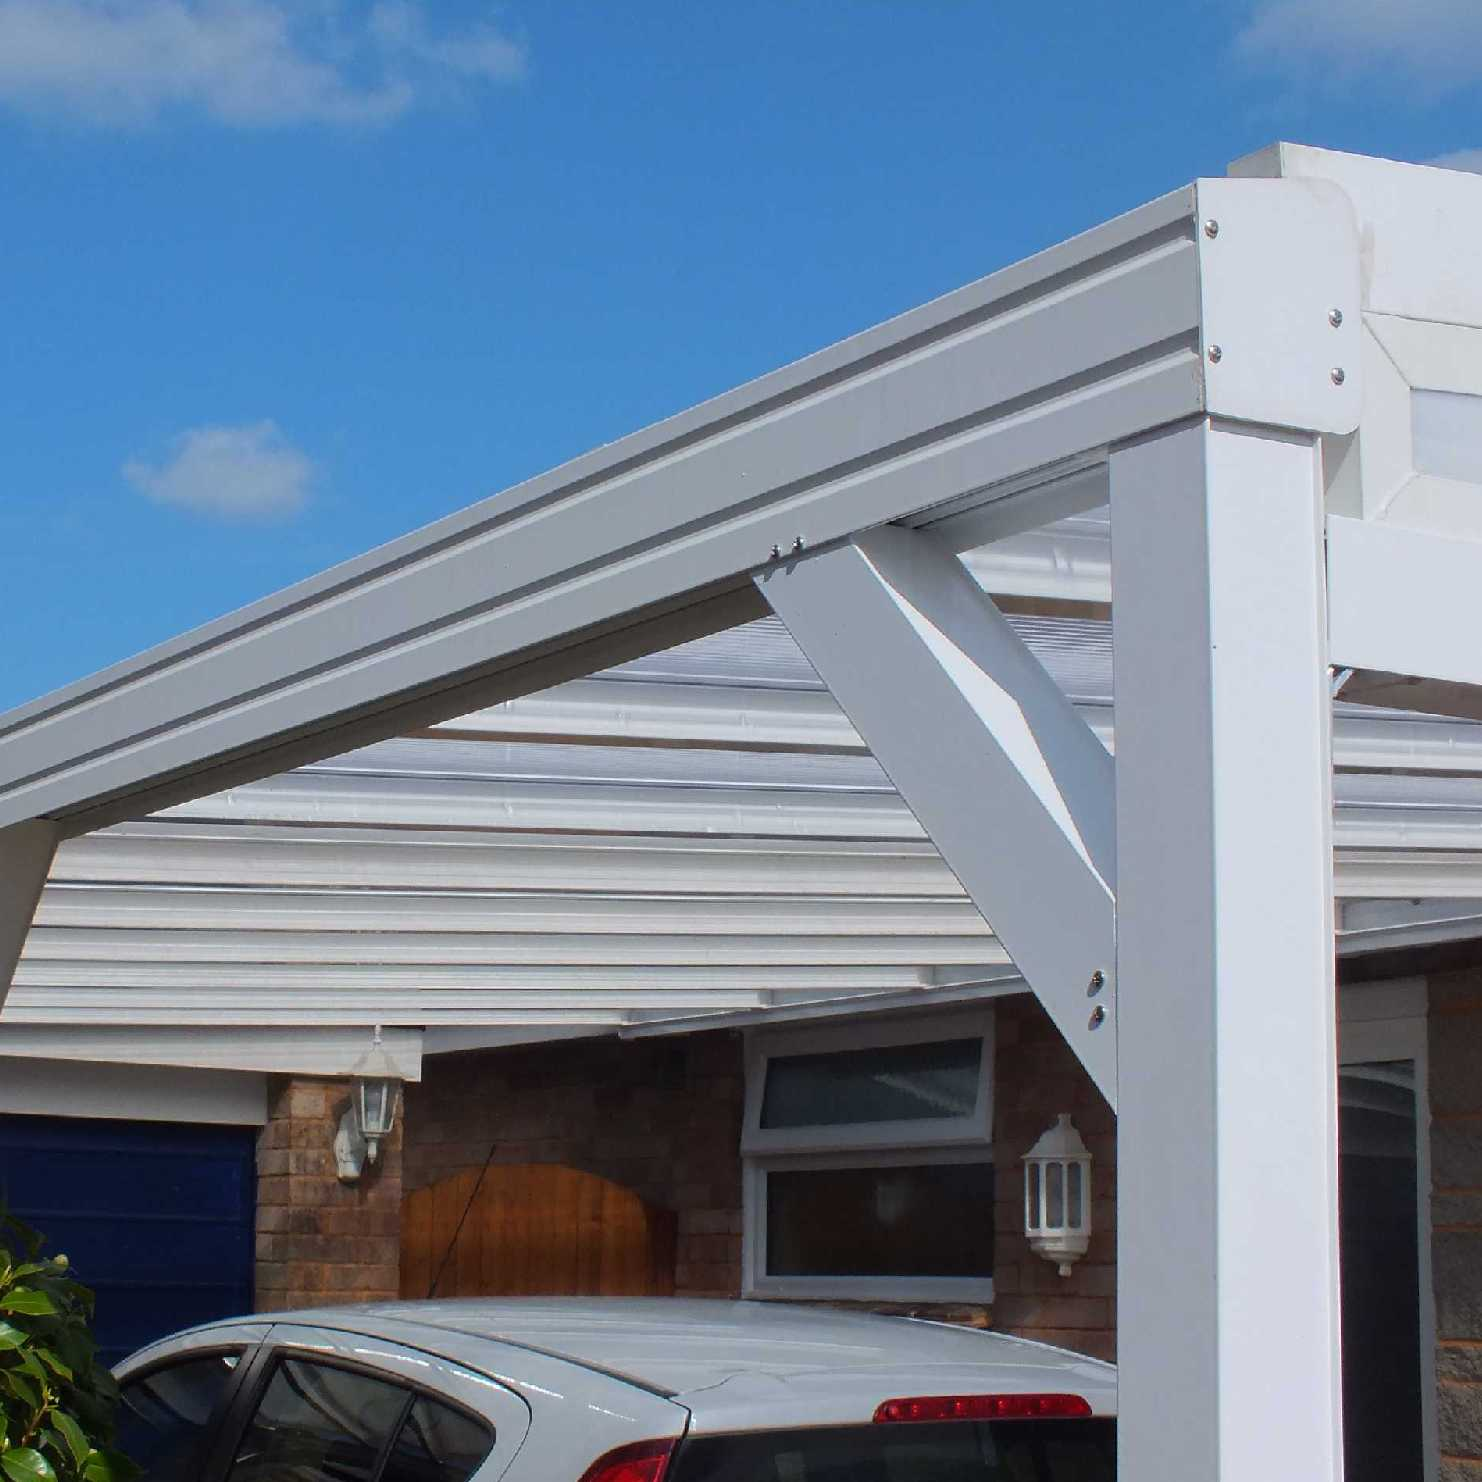 Great deals on Omega Smart White Lean-To Canopy with 16mm Polycarbonate Glazing - 3.1m (W) x 4.5m (P), (2) Supporting Posts